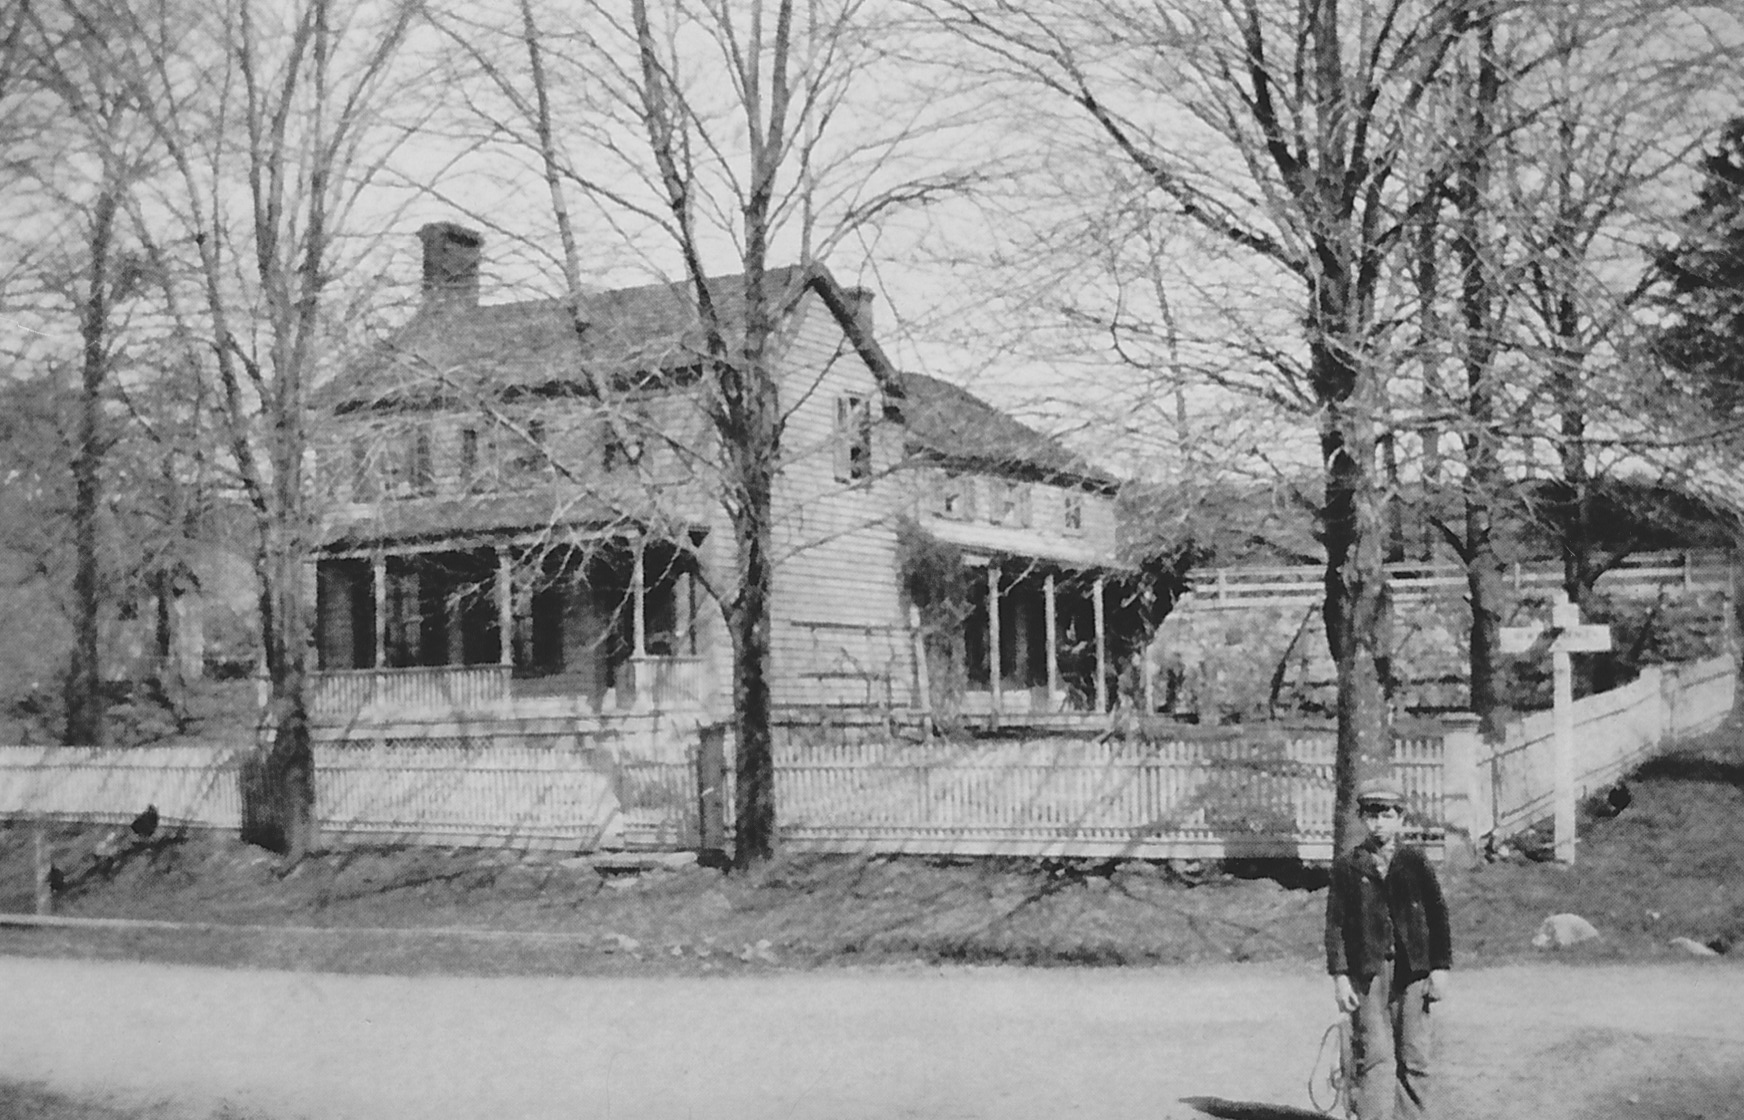 (above) A vintage photo of the Levi Cory house as it appeared in the early 1900s. Recently, the bow window was removed from the Levi Cory house and replaced with siding to restore it to its original appearance.